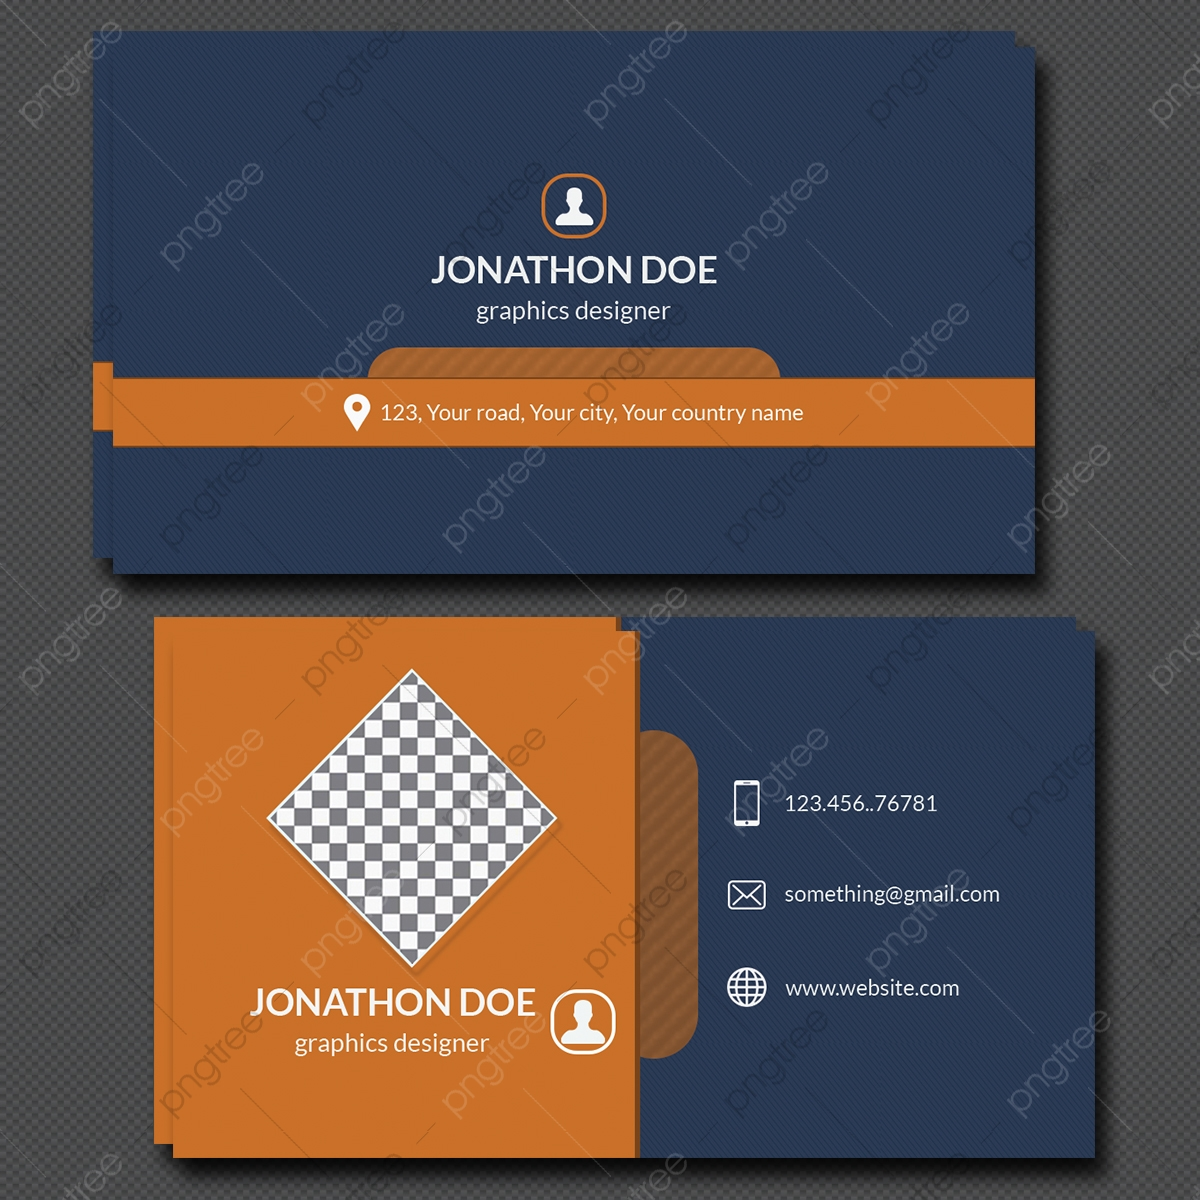 Personal Business Card Template Template Download on Pngtree